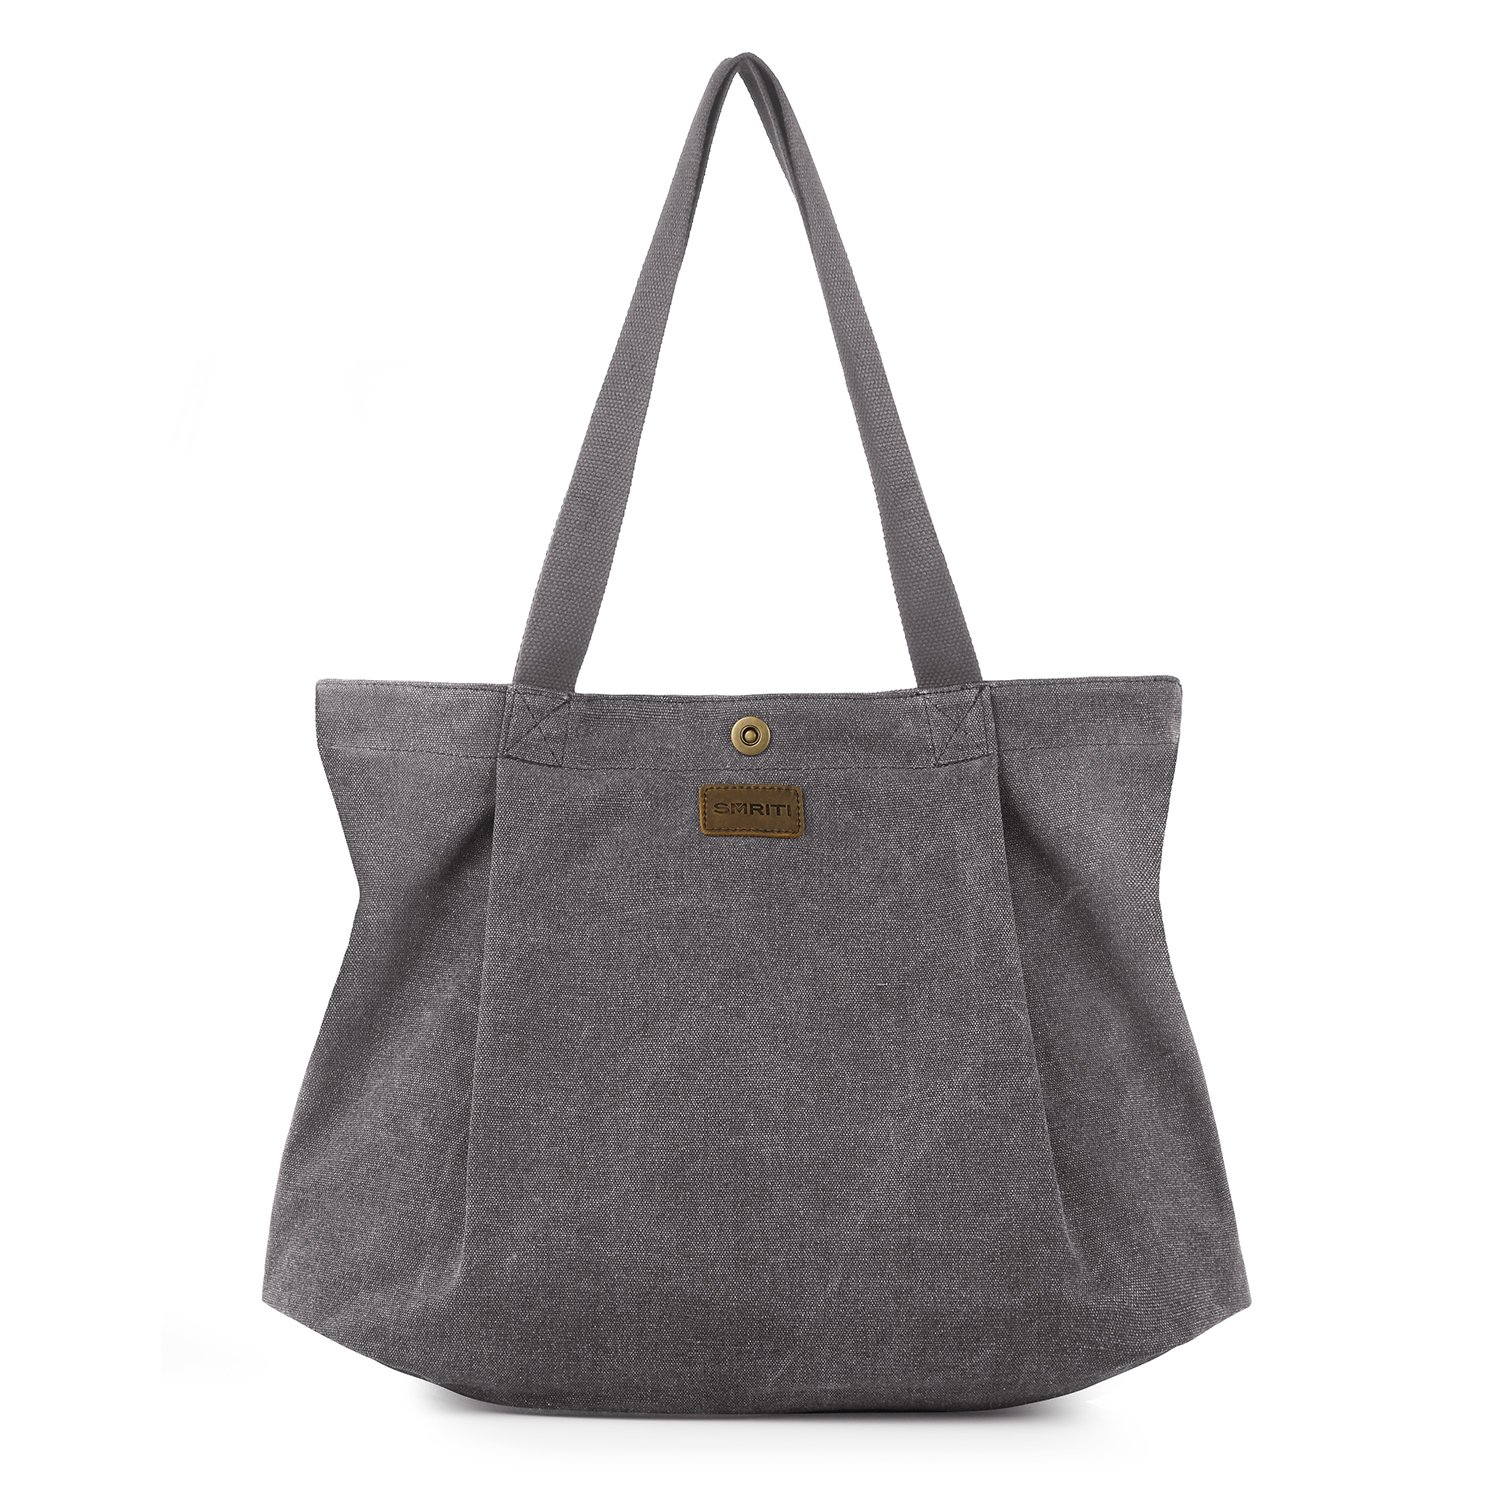 SMRITI Canvas Tote Bag for Women School Work Travel and Shopping (2 Light Grey) product image